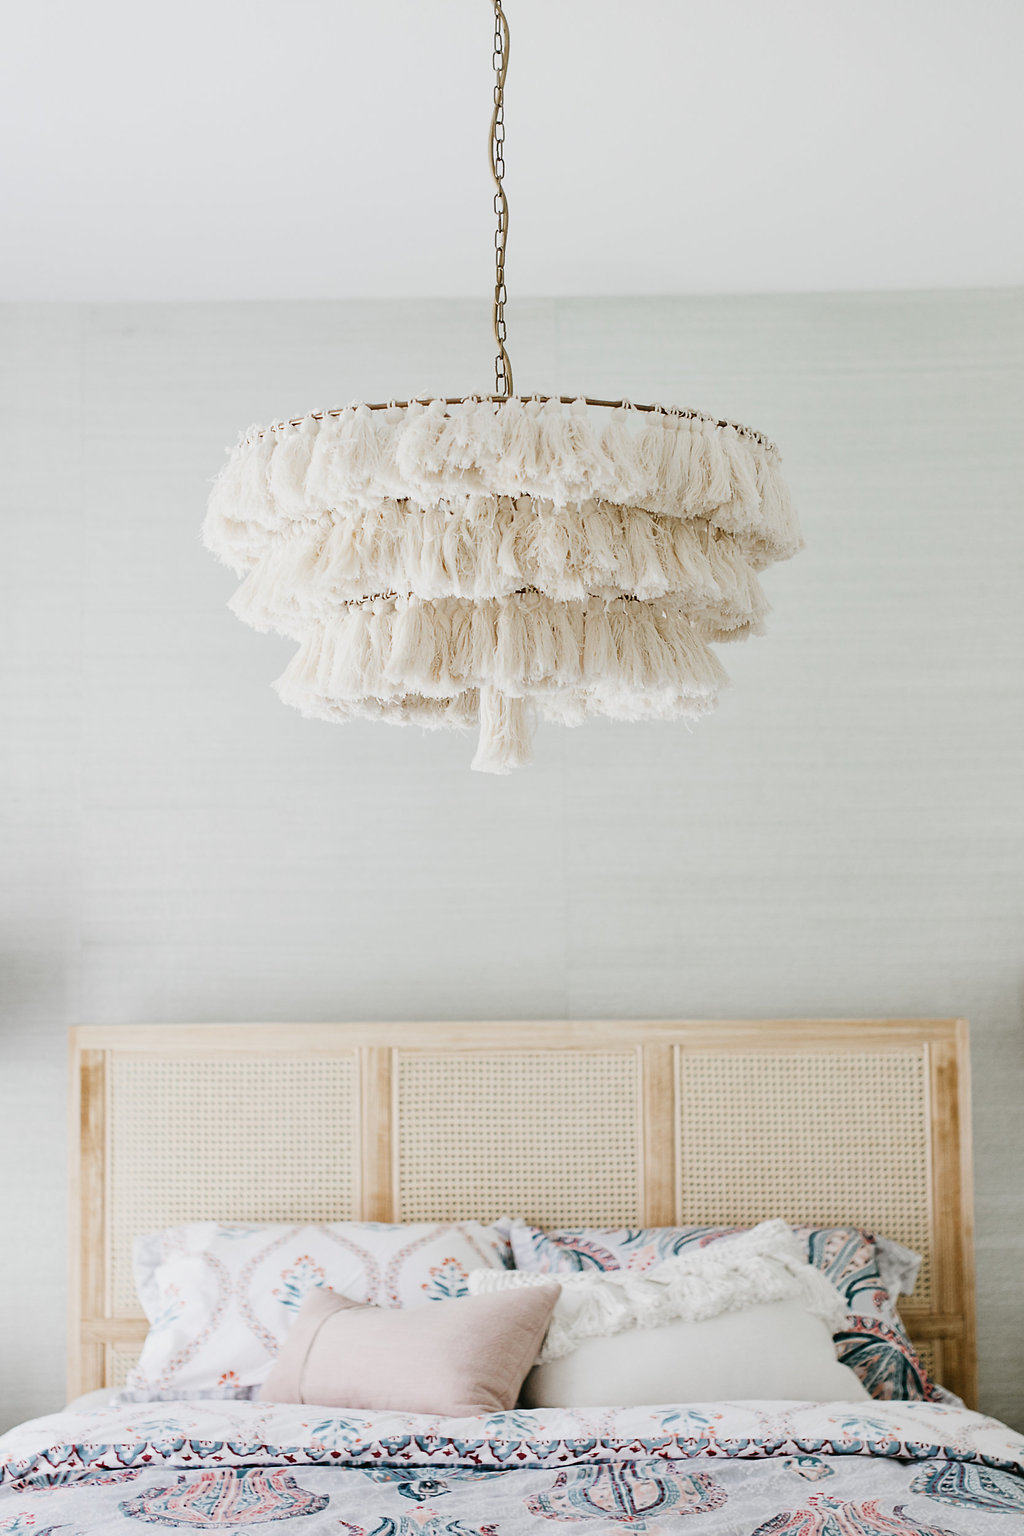 Cream, White, Tassel hanging light fixture